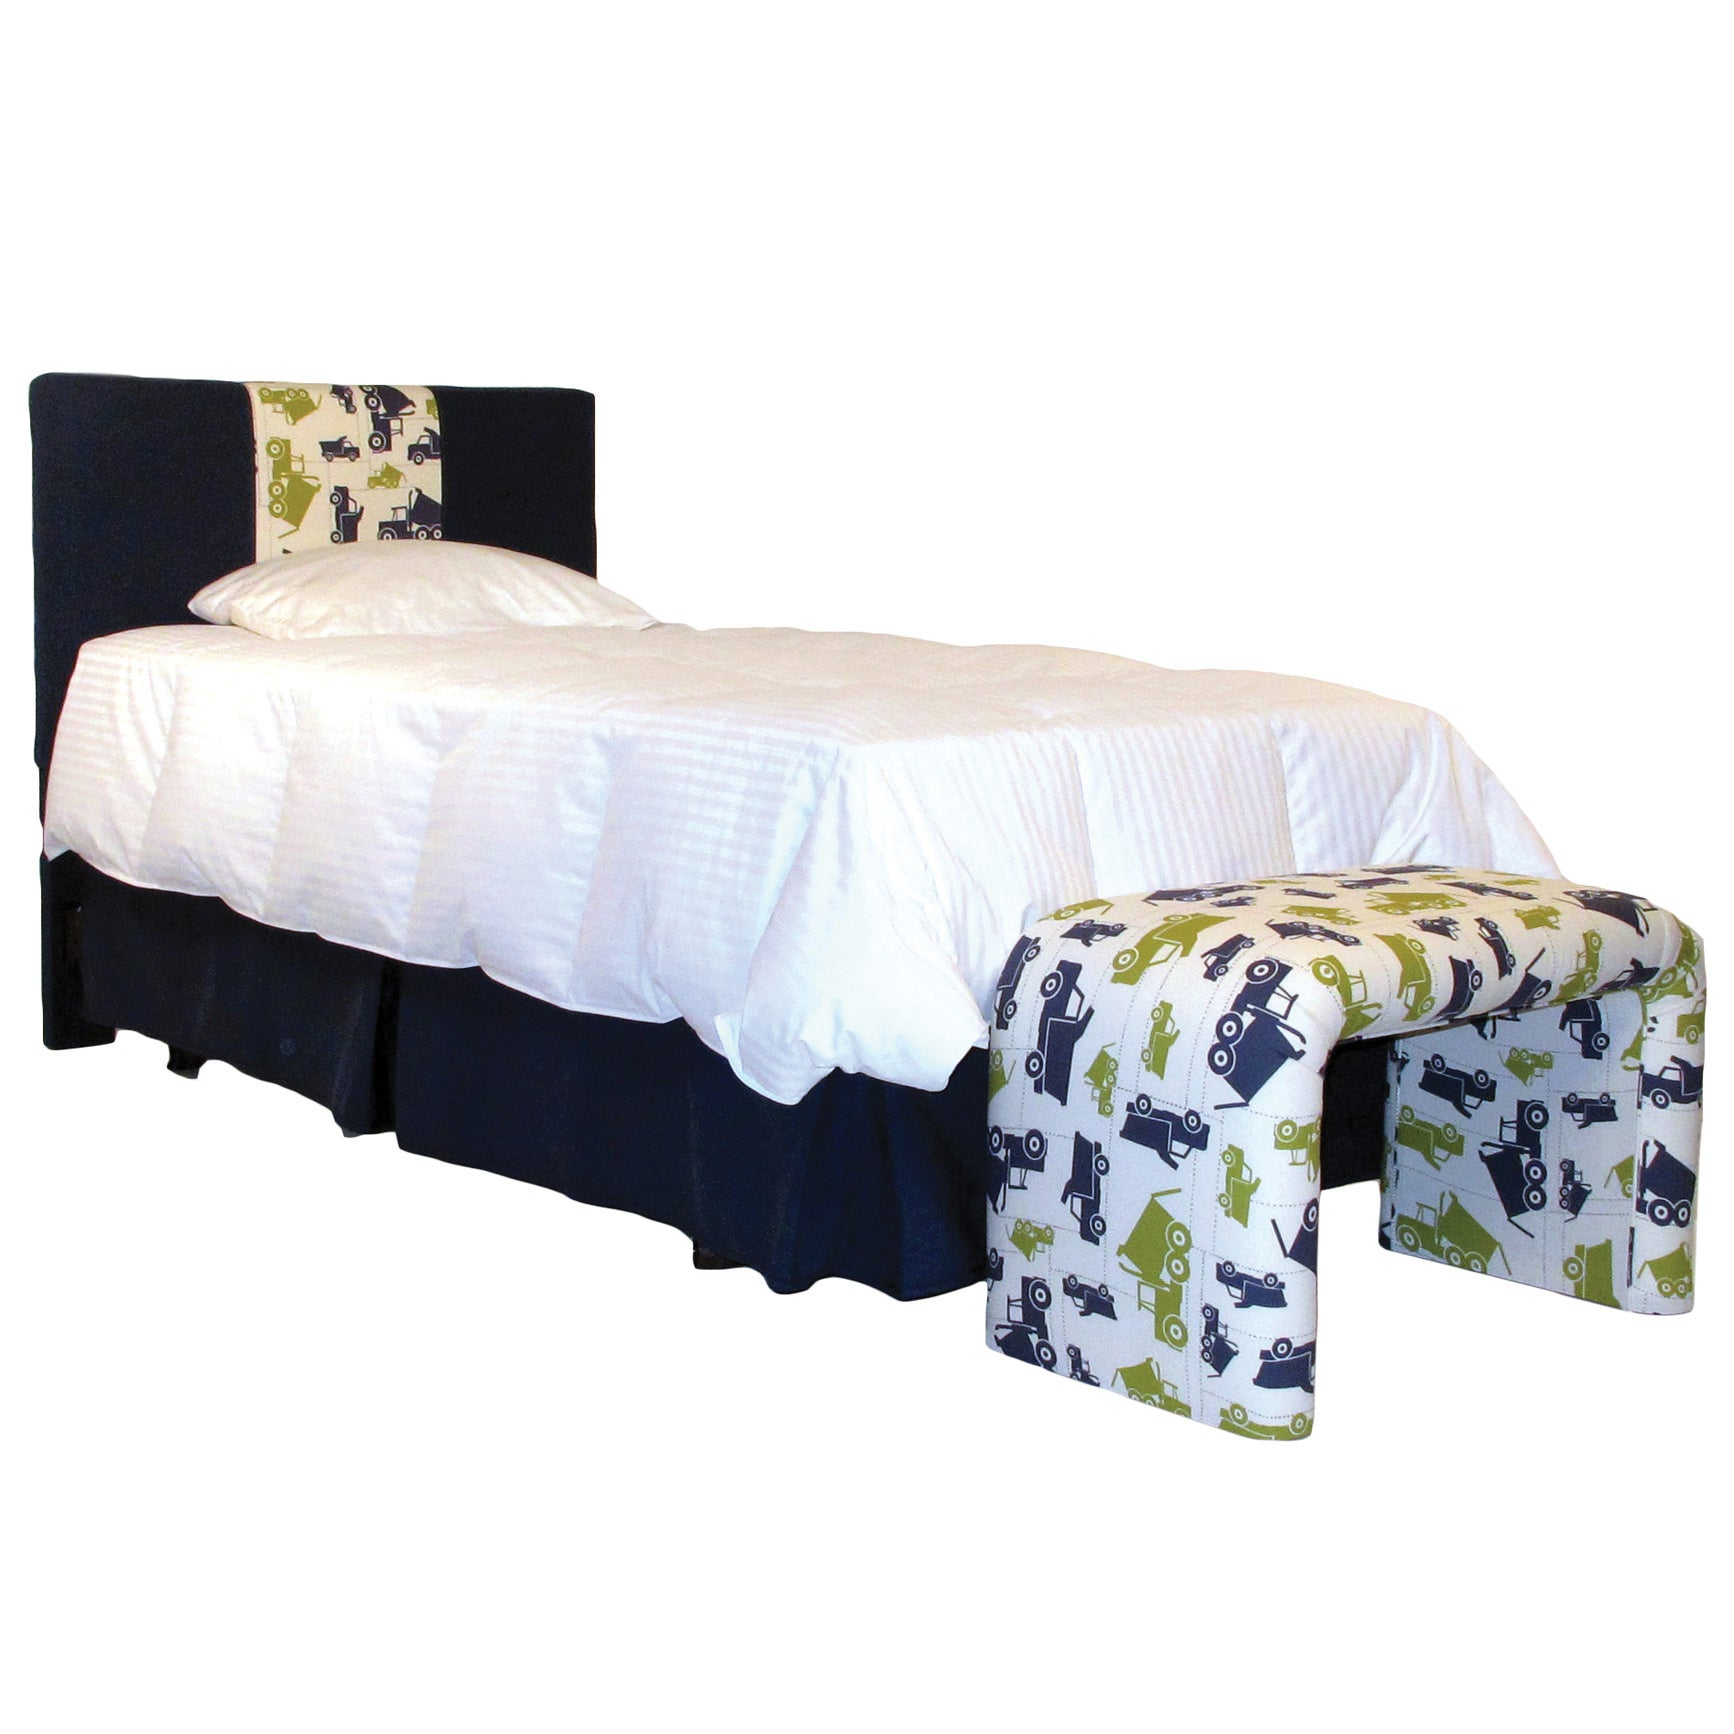 3 Panel Twin Headboard in Dump Truck Print and Navy Cotto...